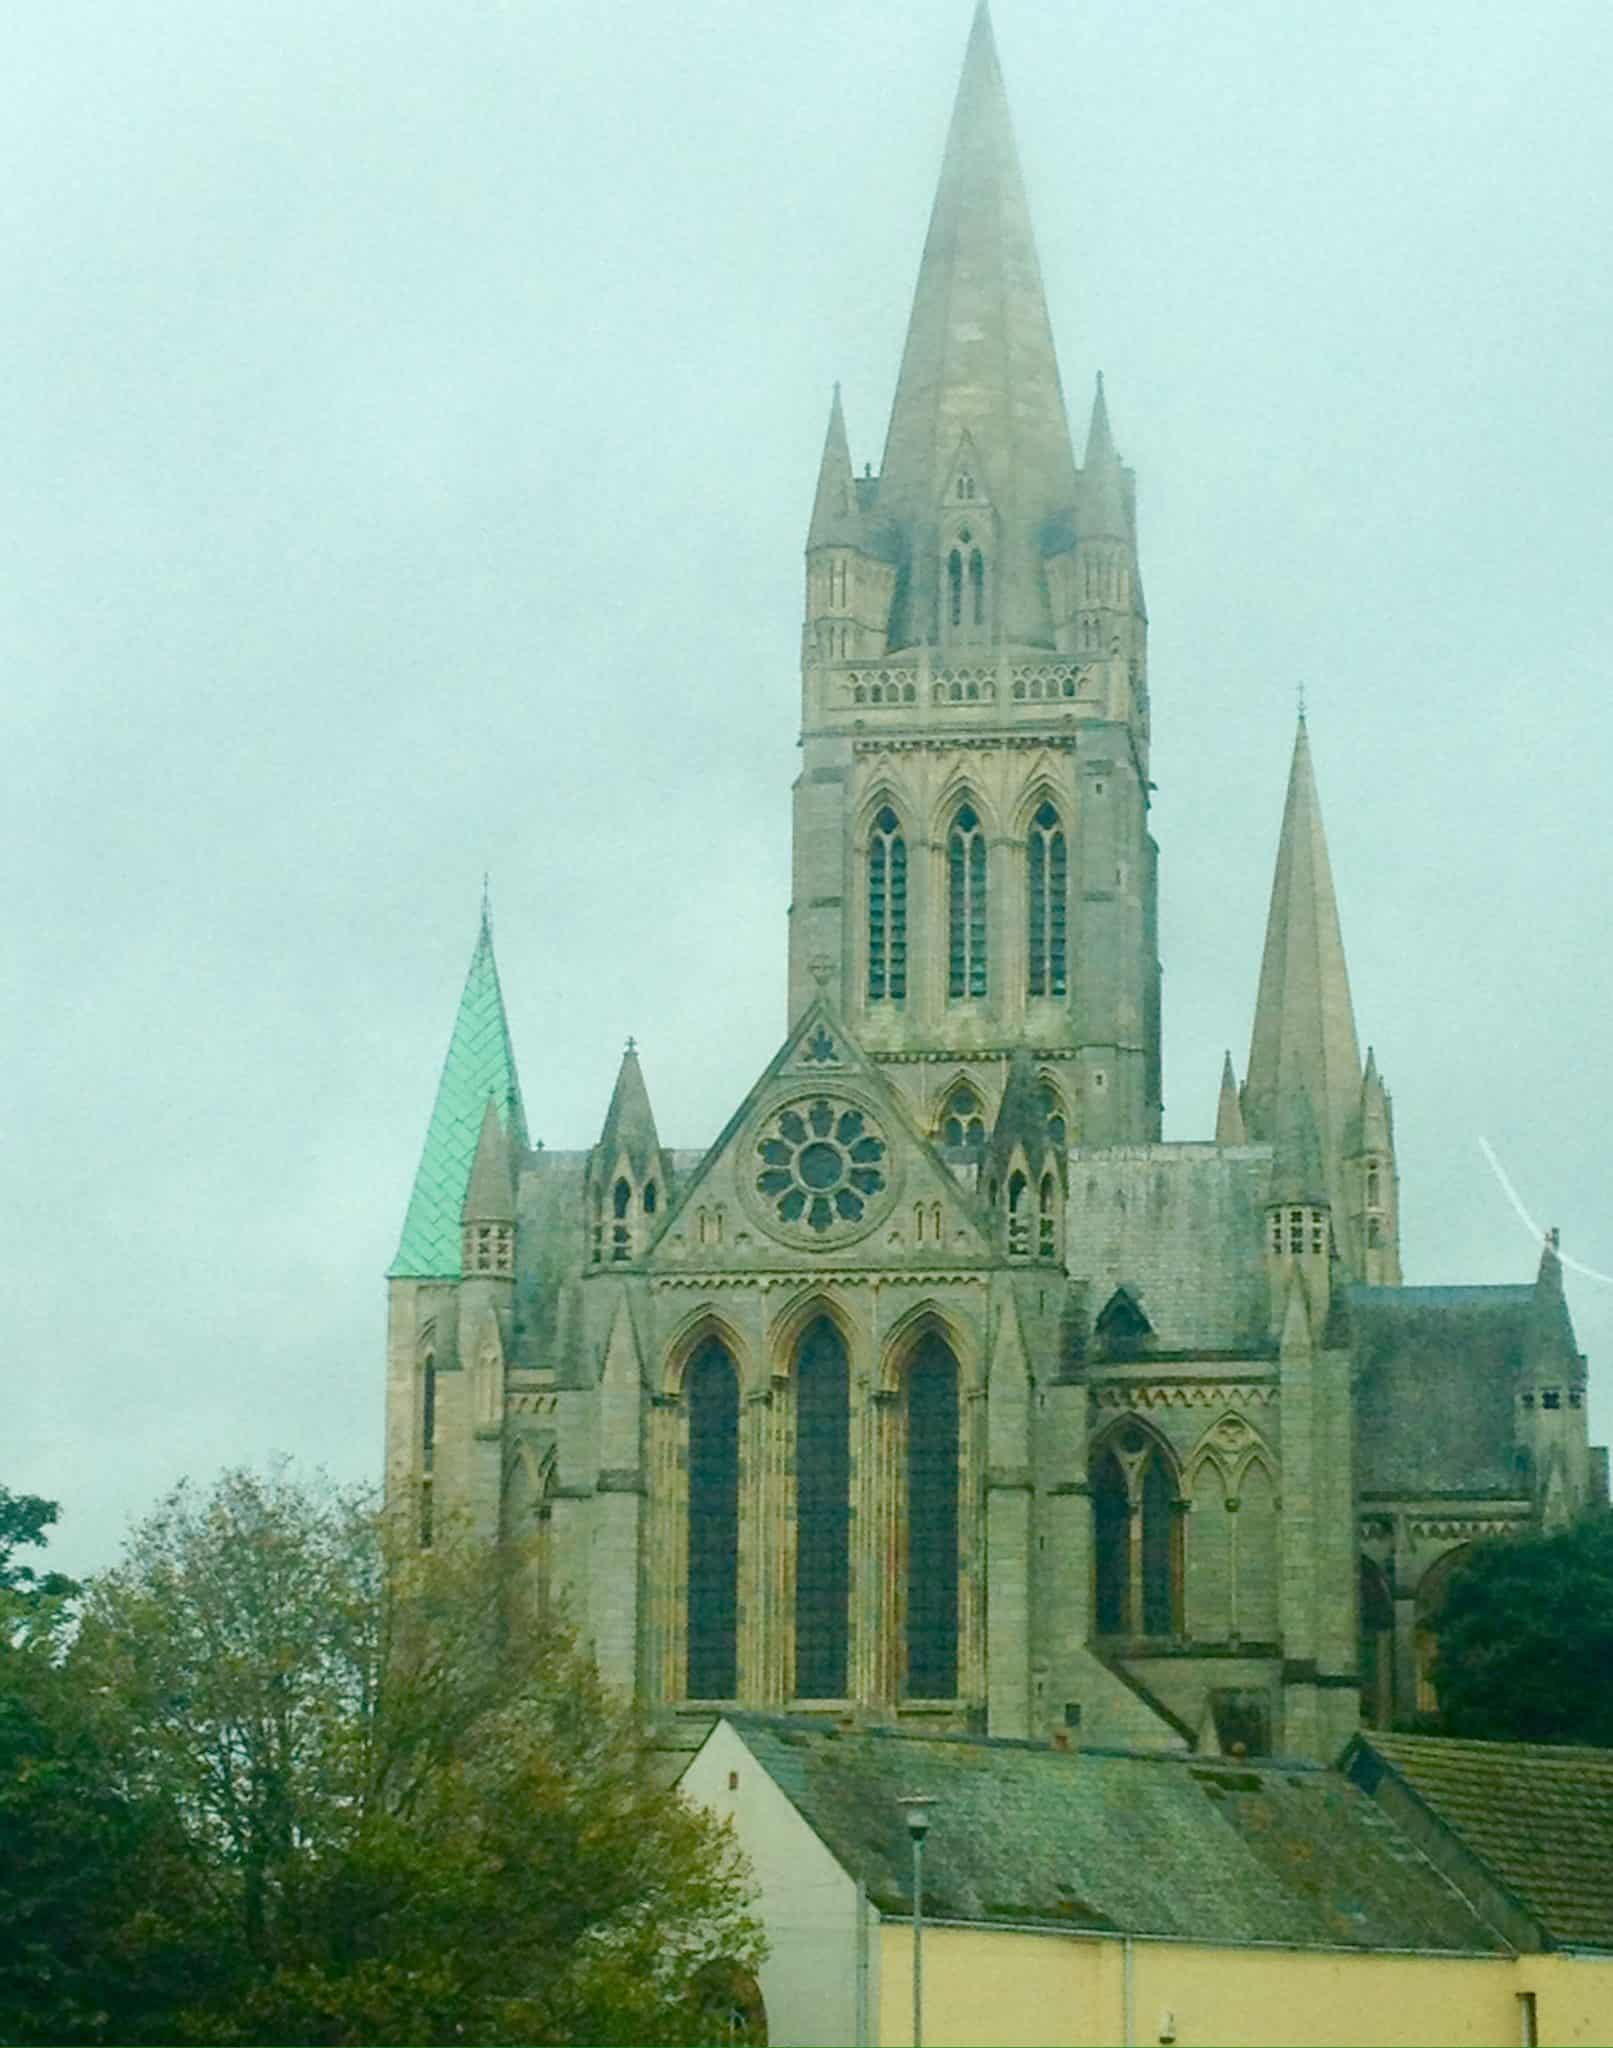 My Sunday Photo - Truro Cathedral